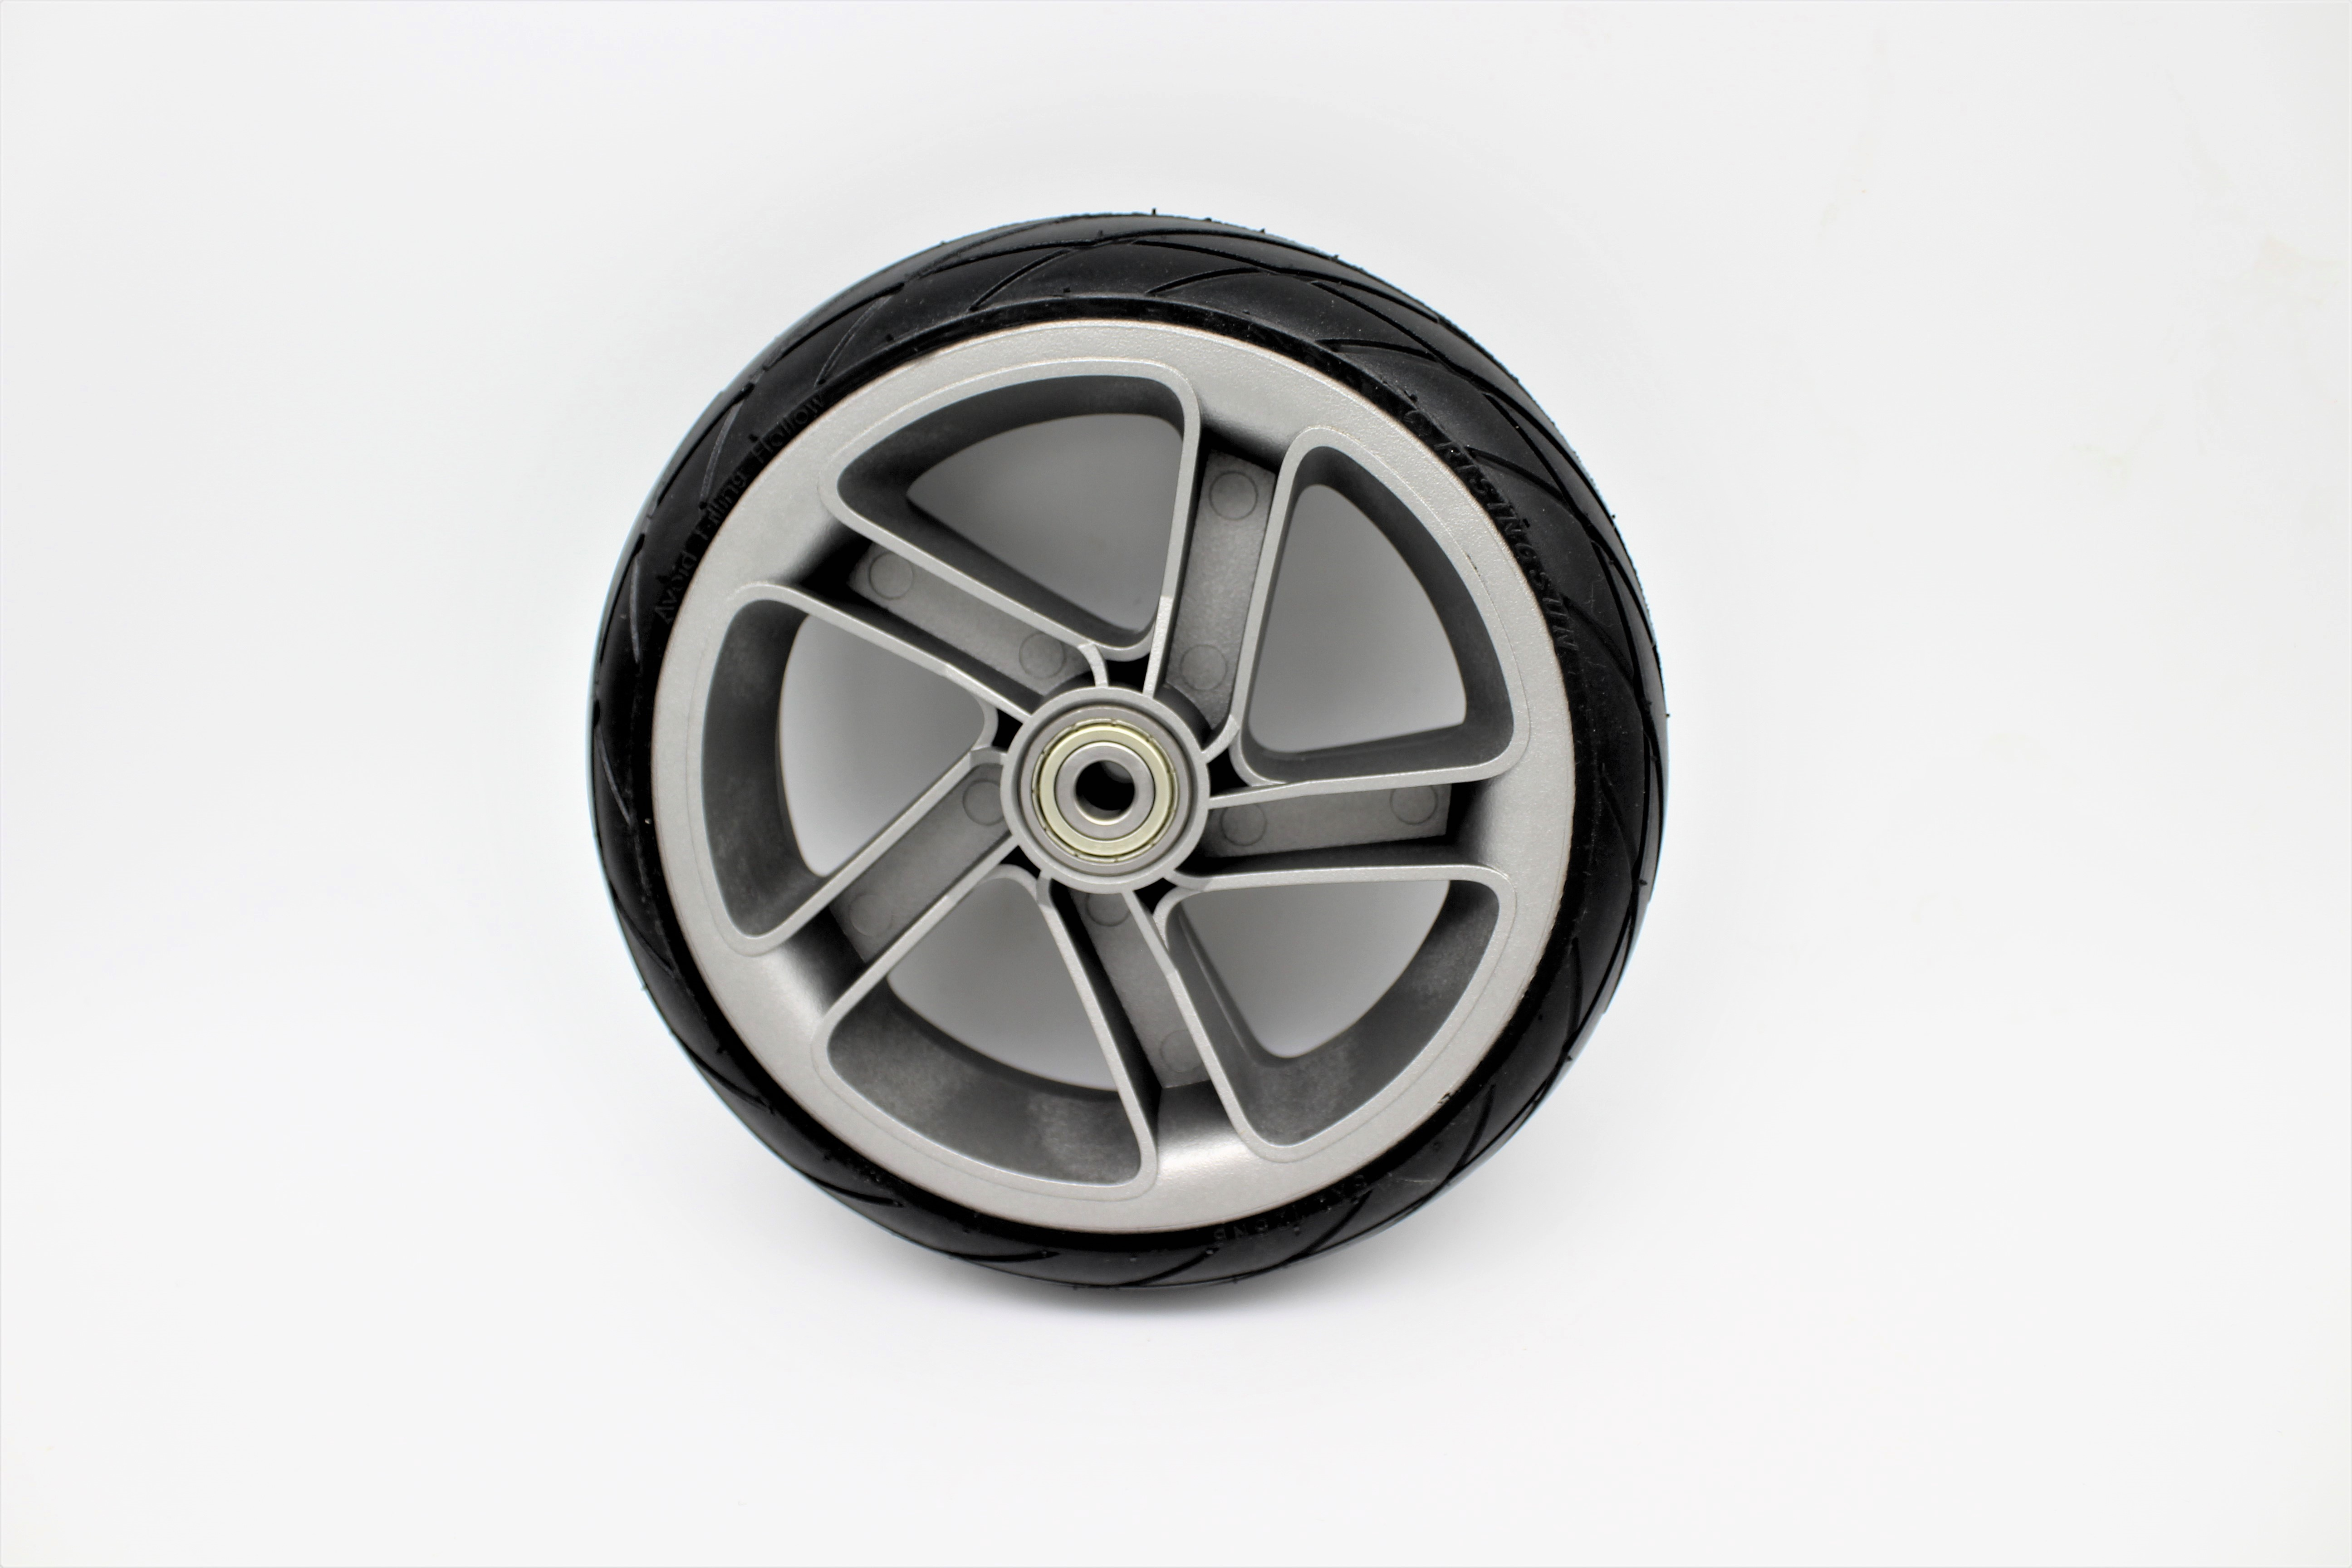 Details about Ninebot ES2 Electric Folding Scooter Rear Wheel Assembly